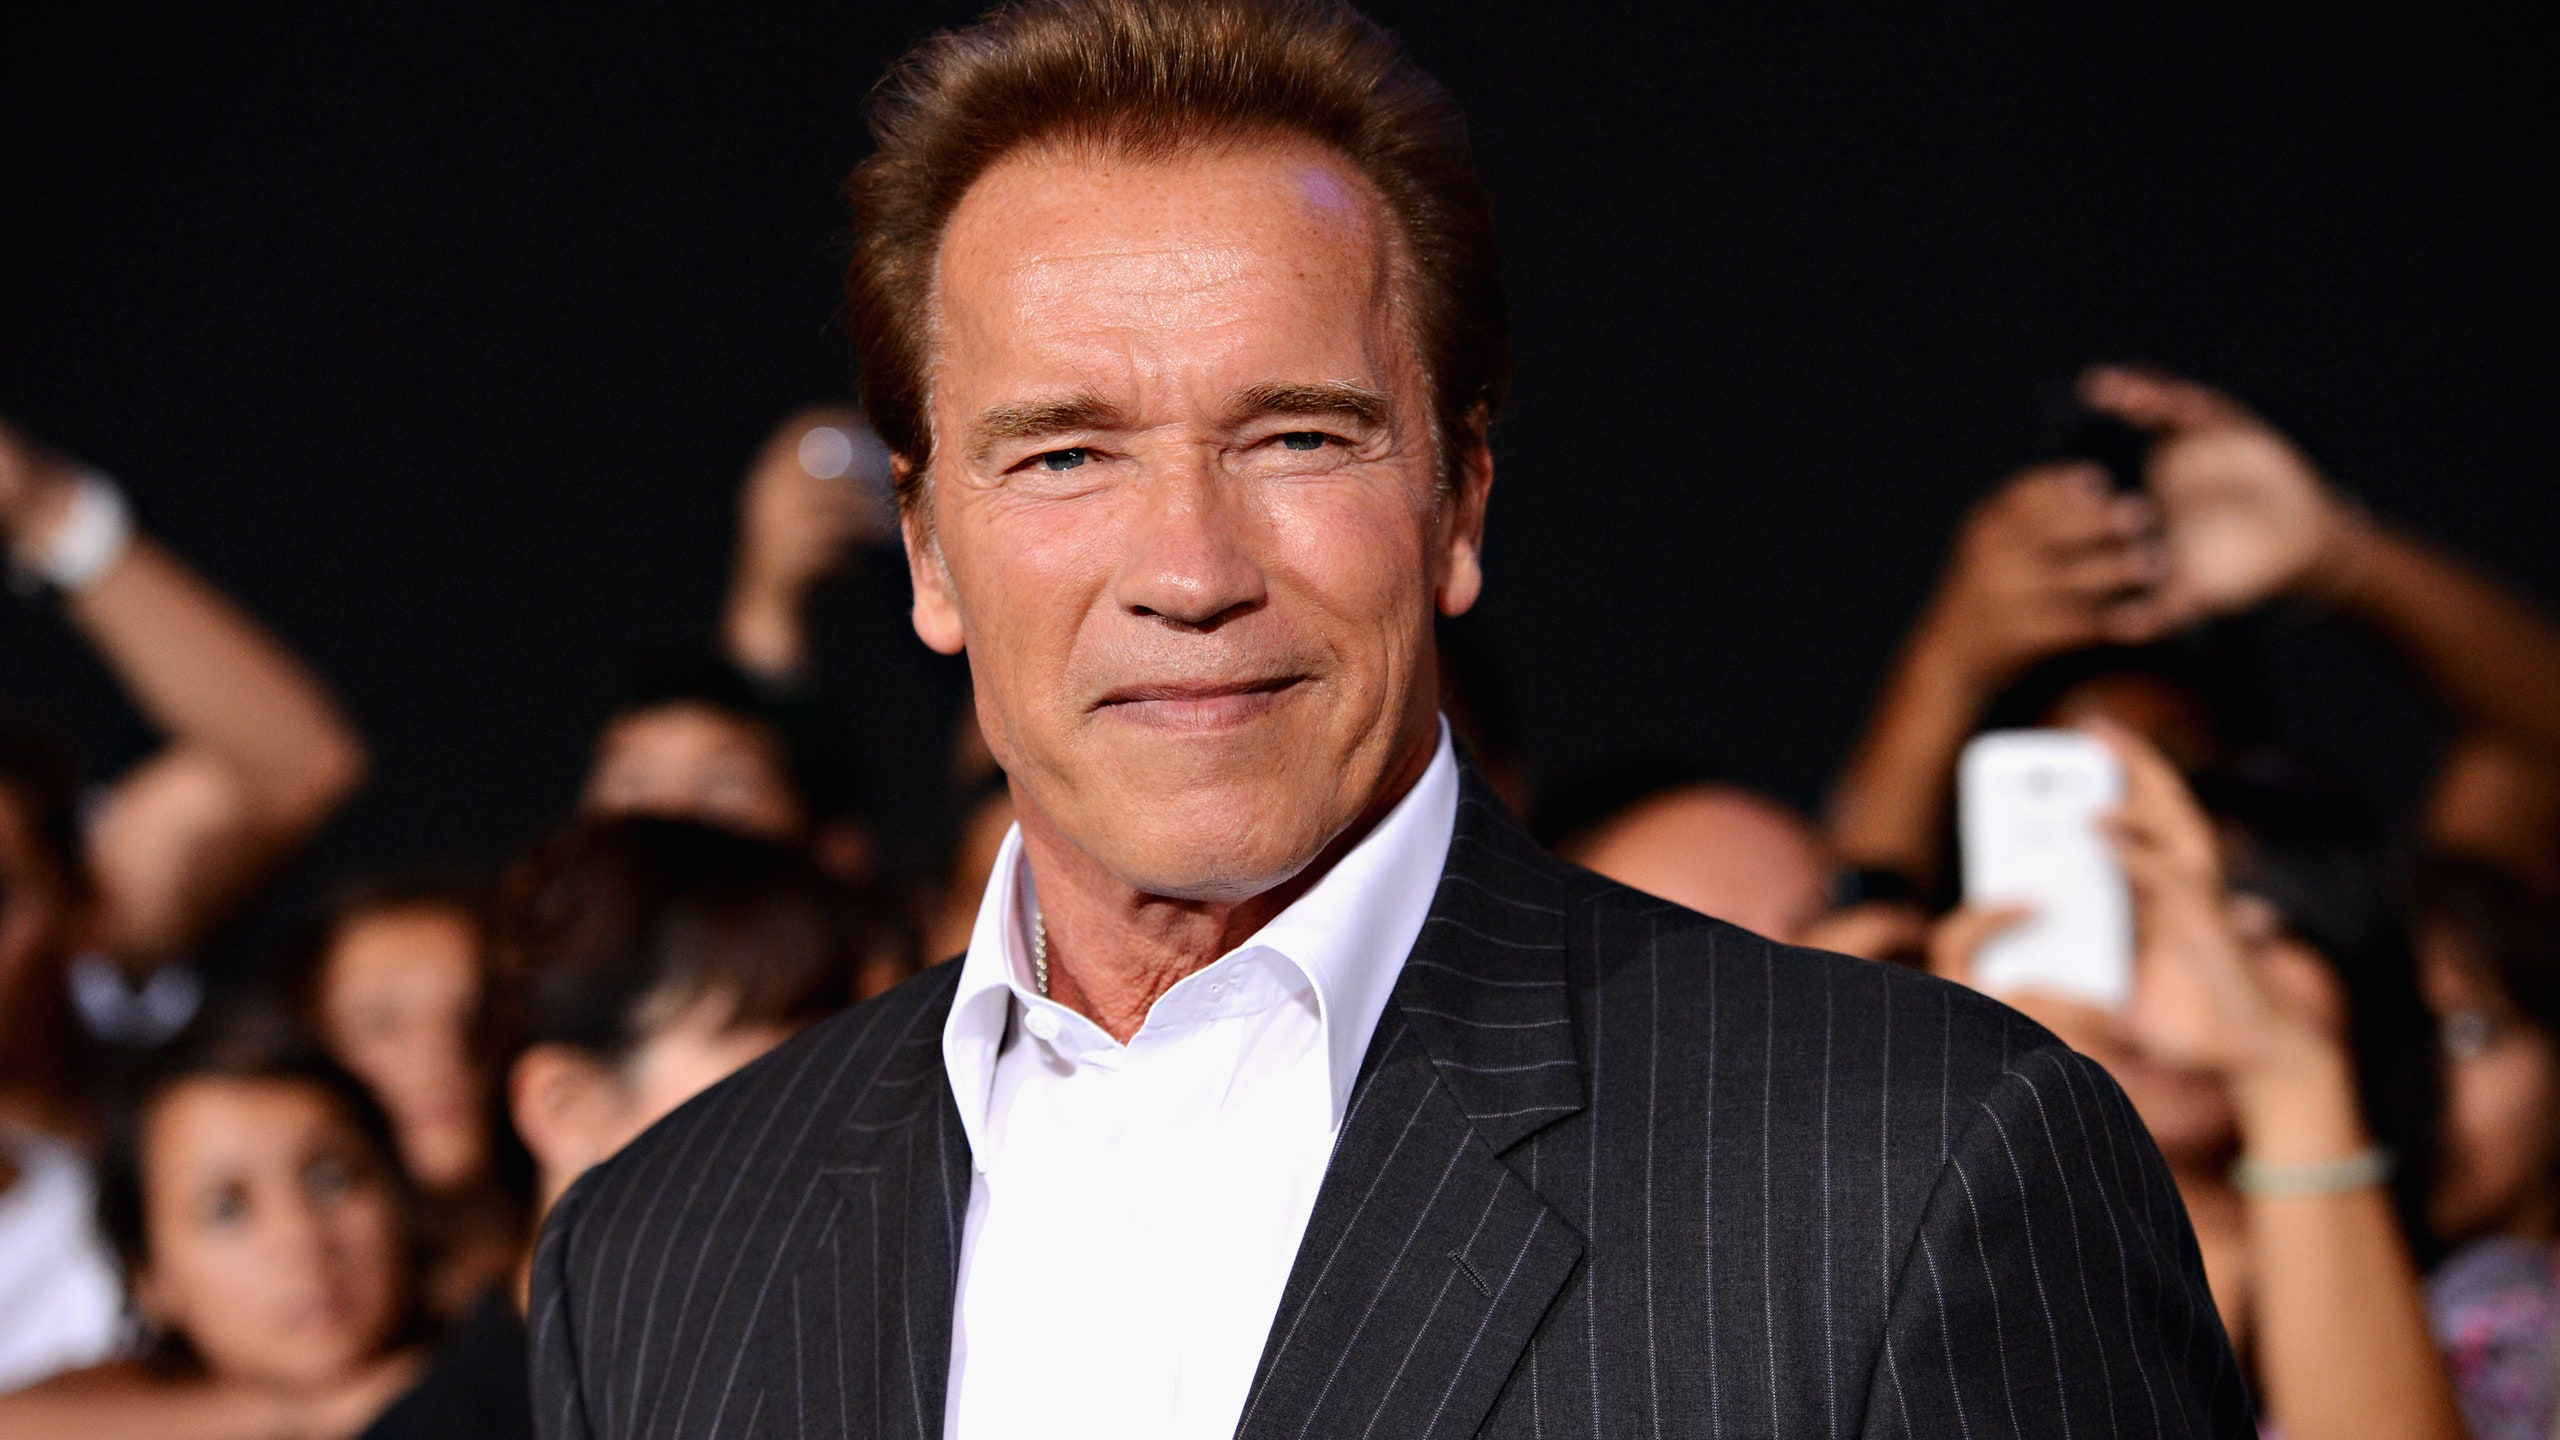 Arnold Schwarzenegger Biography, Facts & Life Story Updated 2021